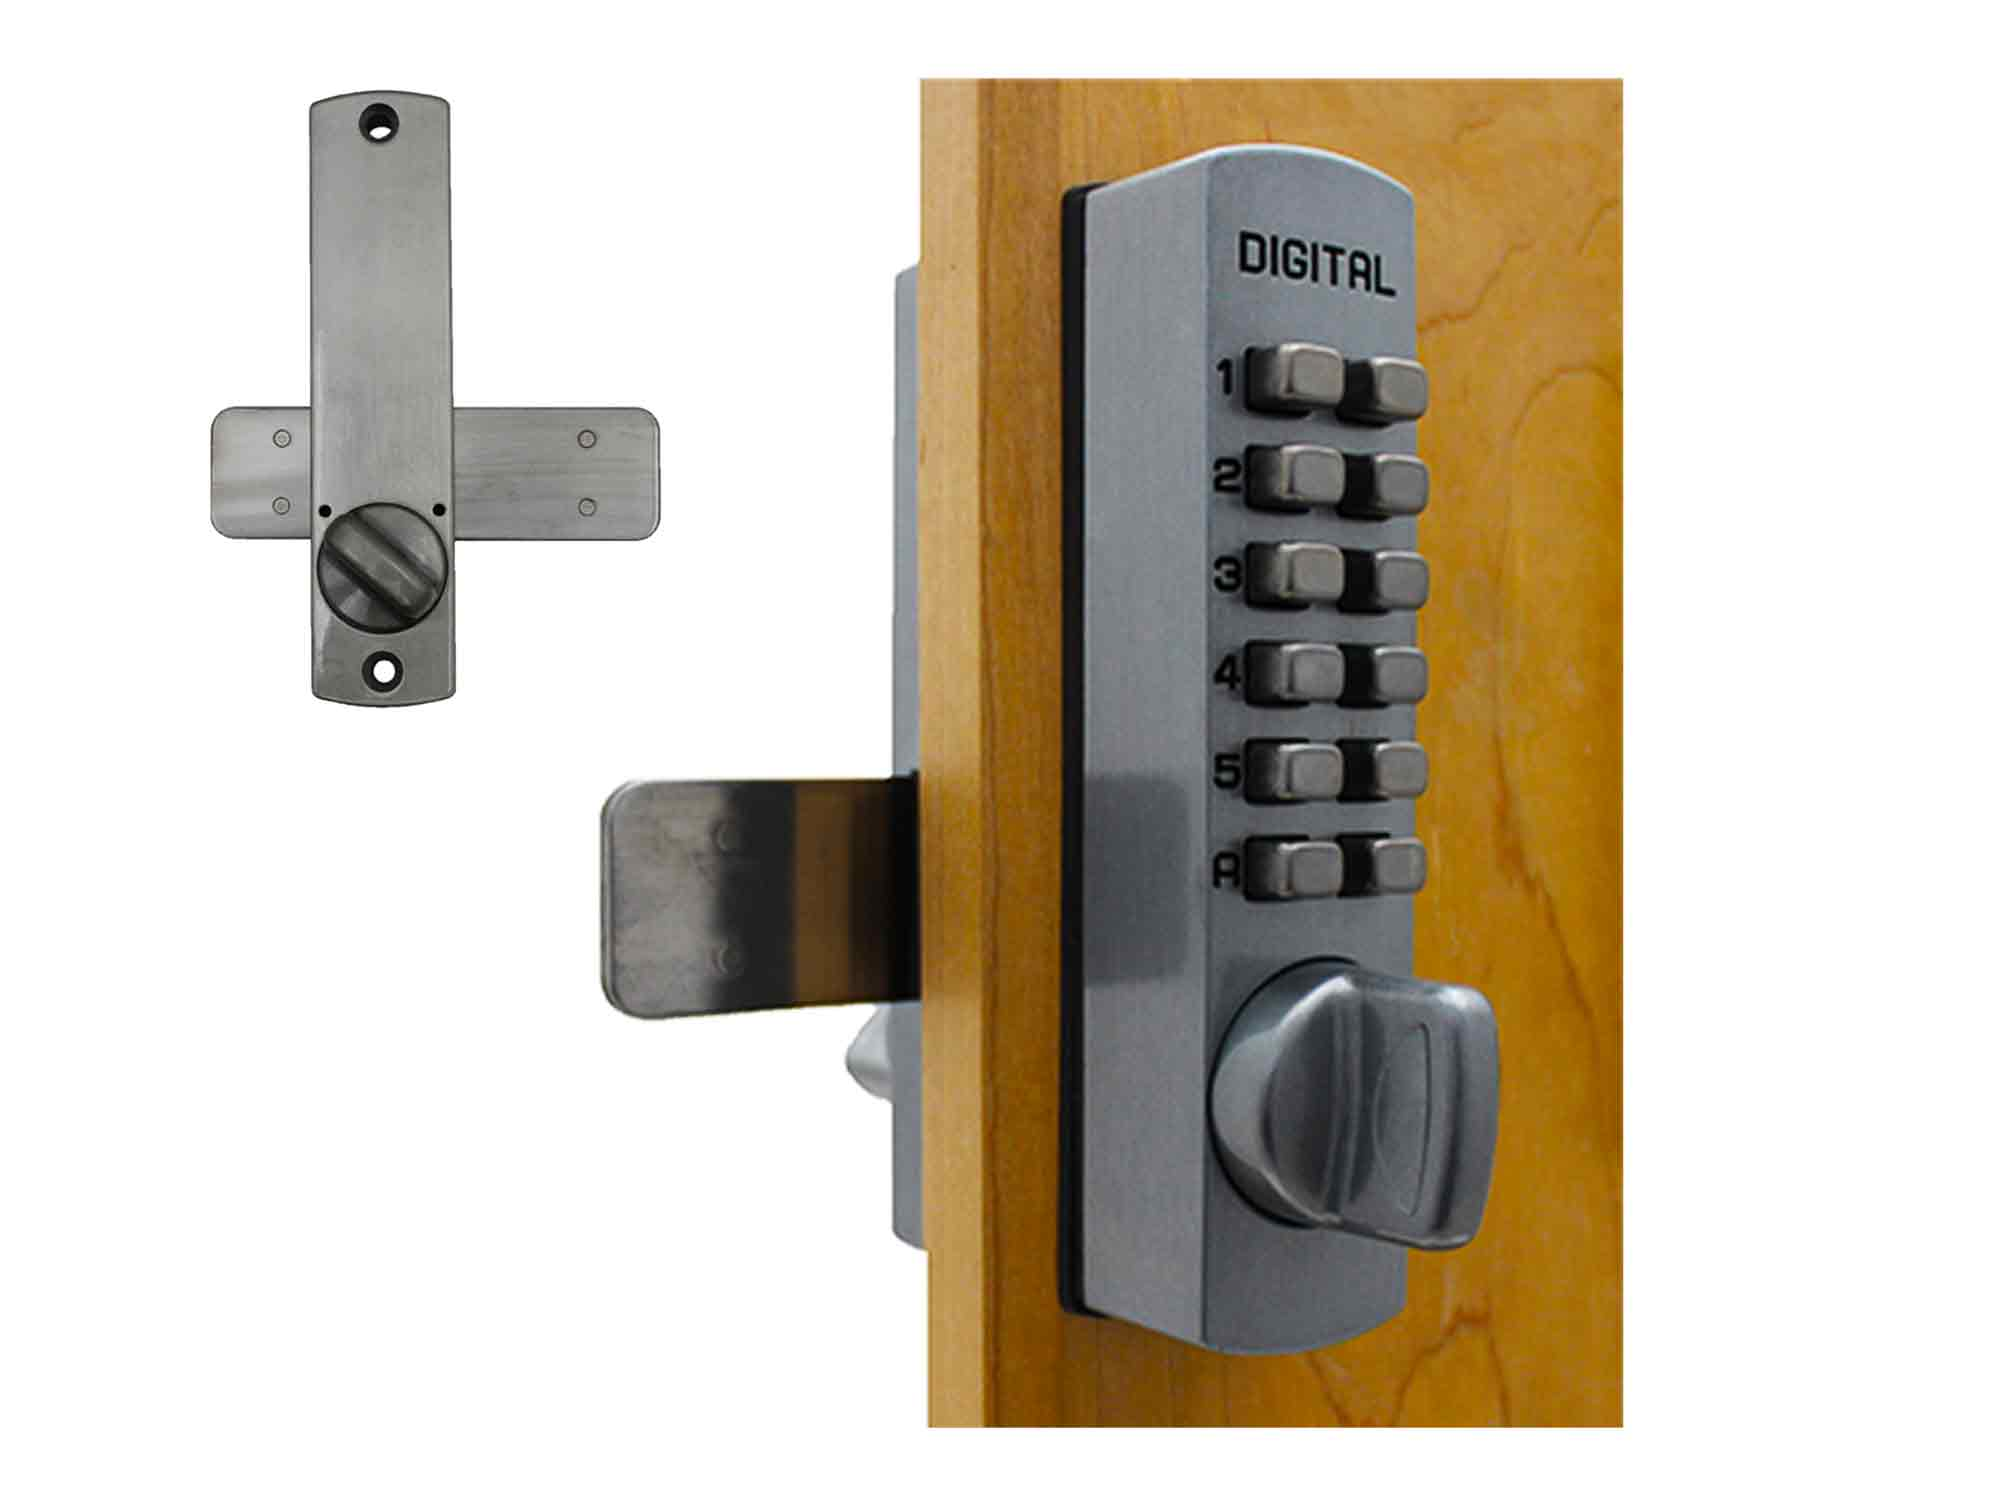 Lockey C120 Surface-Mount Cabinet Slide-Bar Deadbolt Keypad Lock